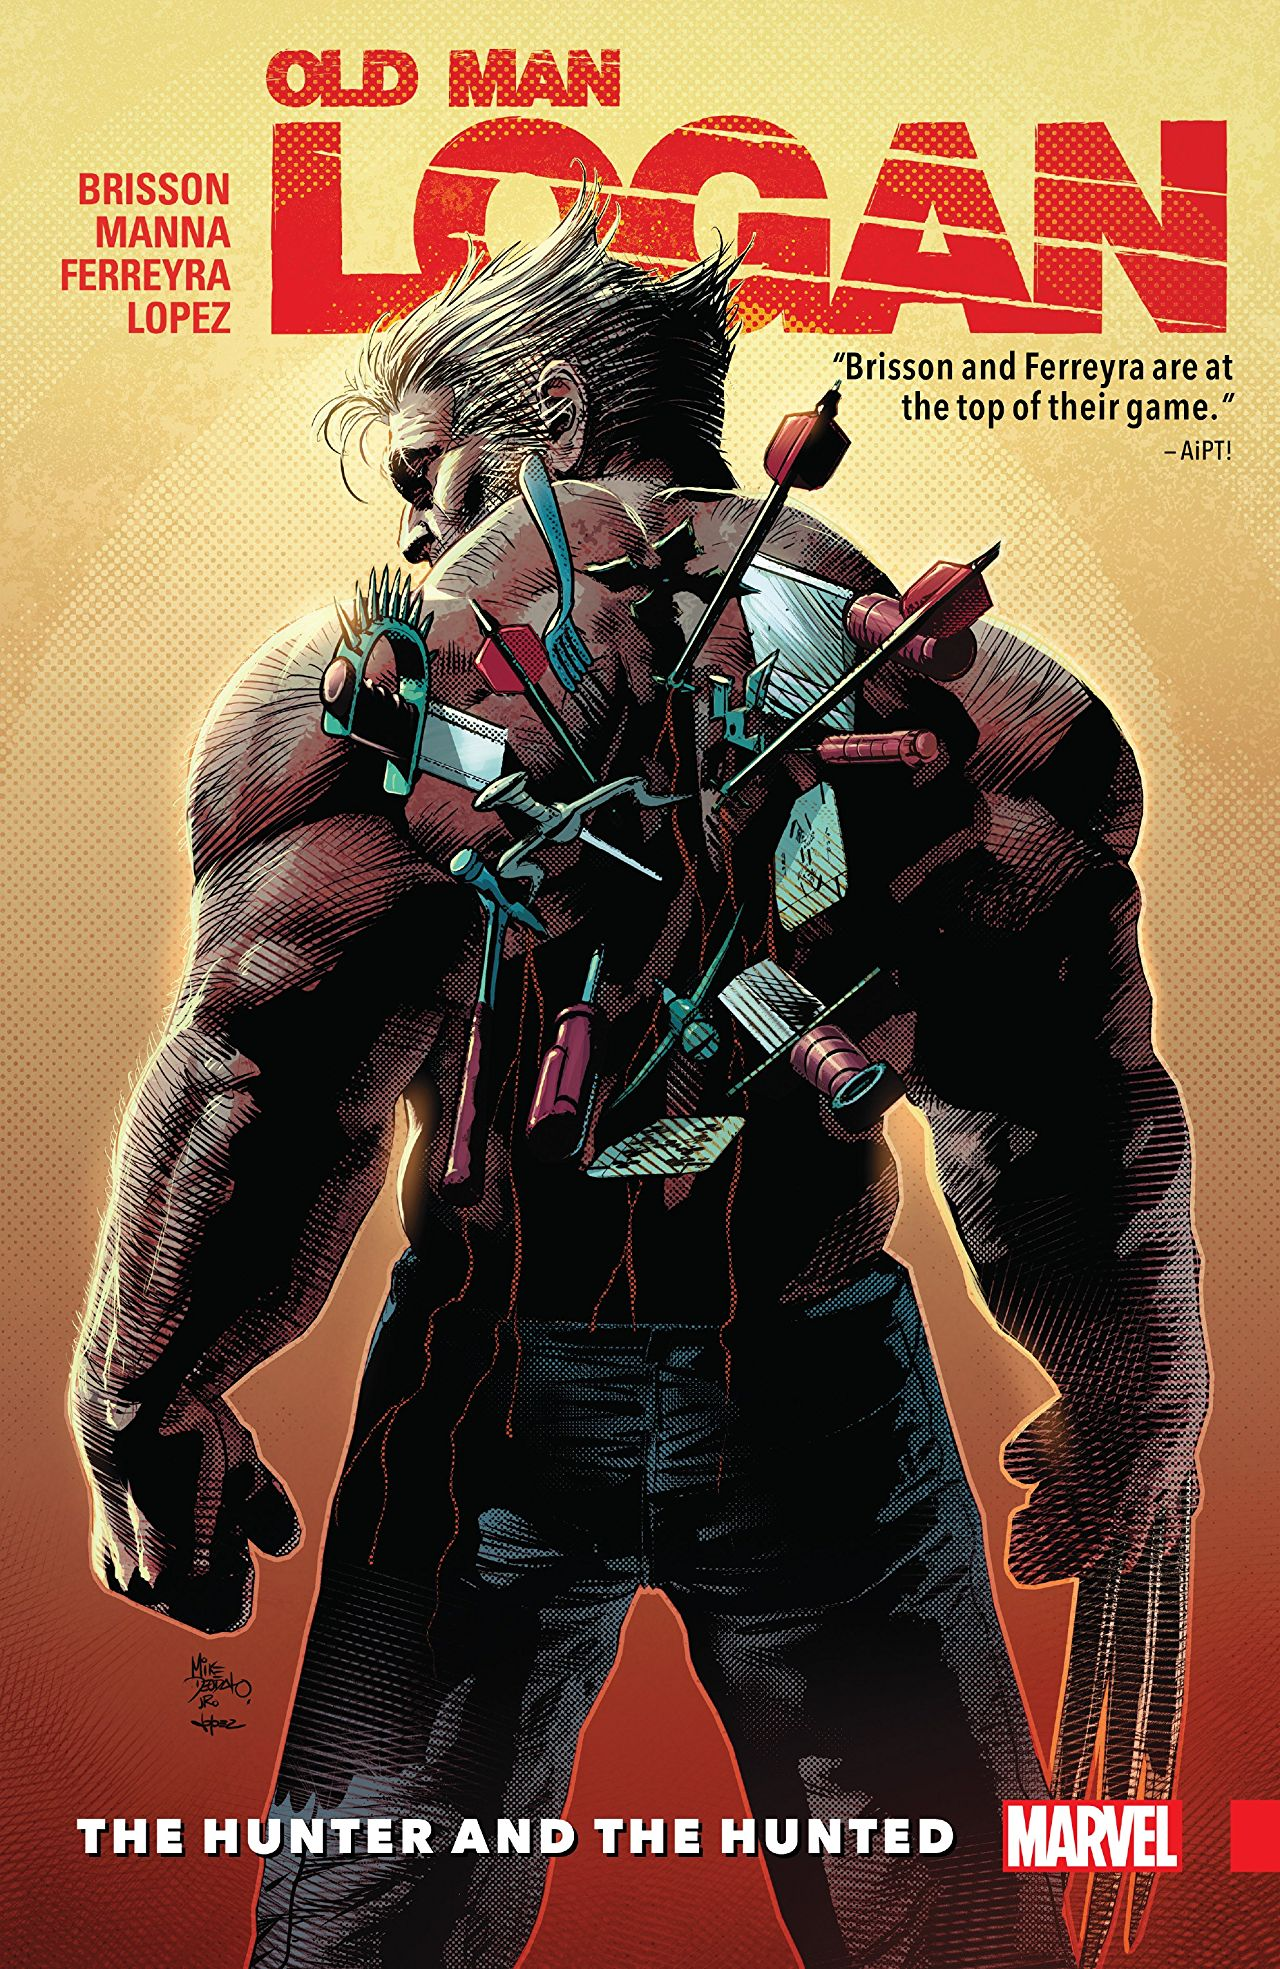 Old Man Logan Vol. 9: The Hunter and the Hunted review